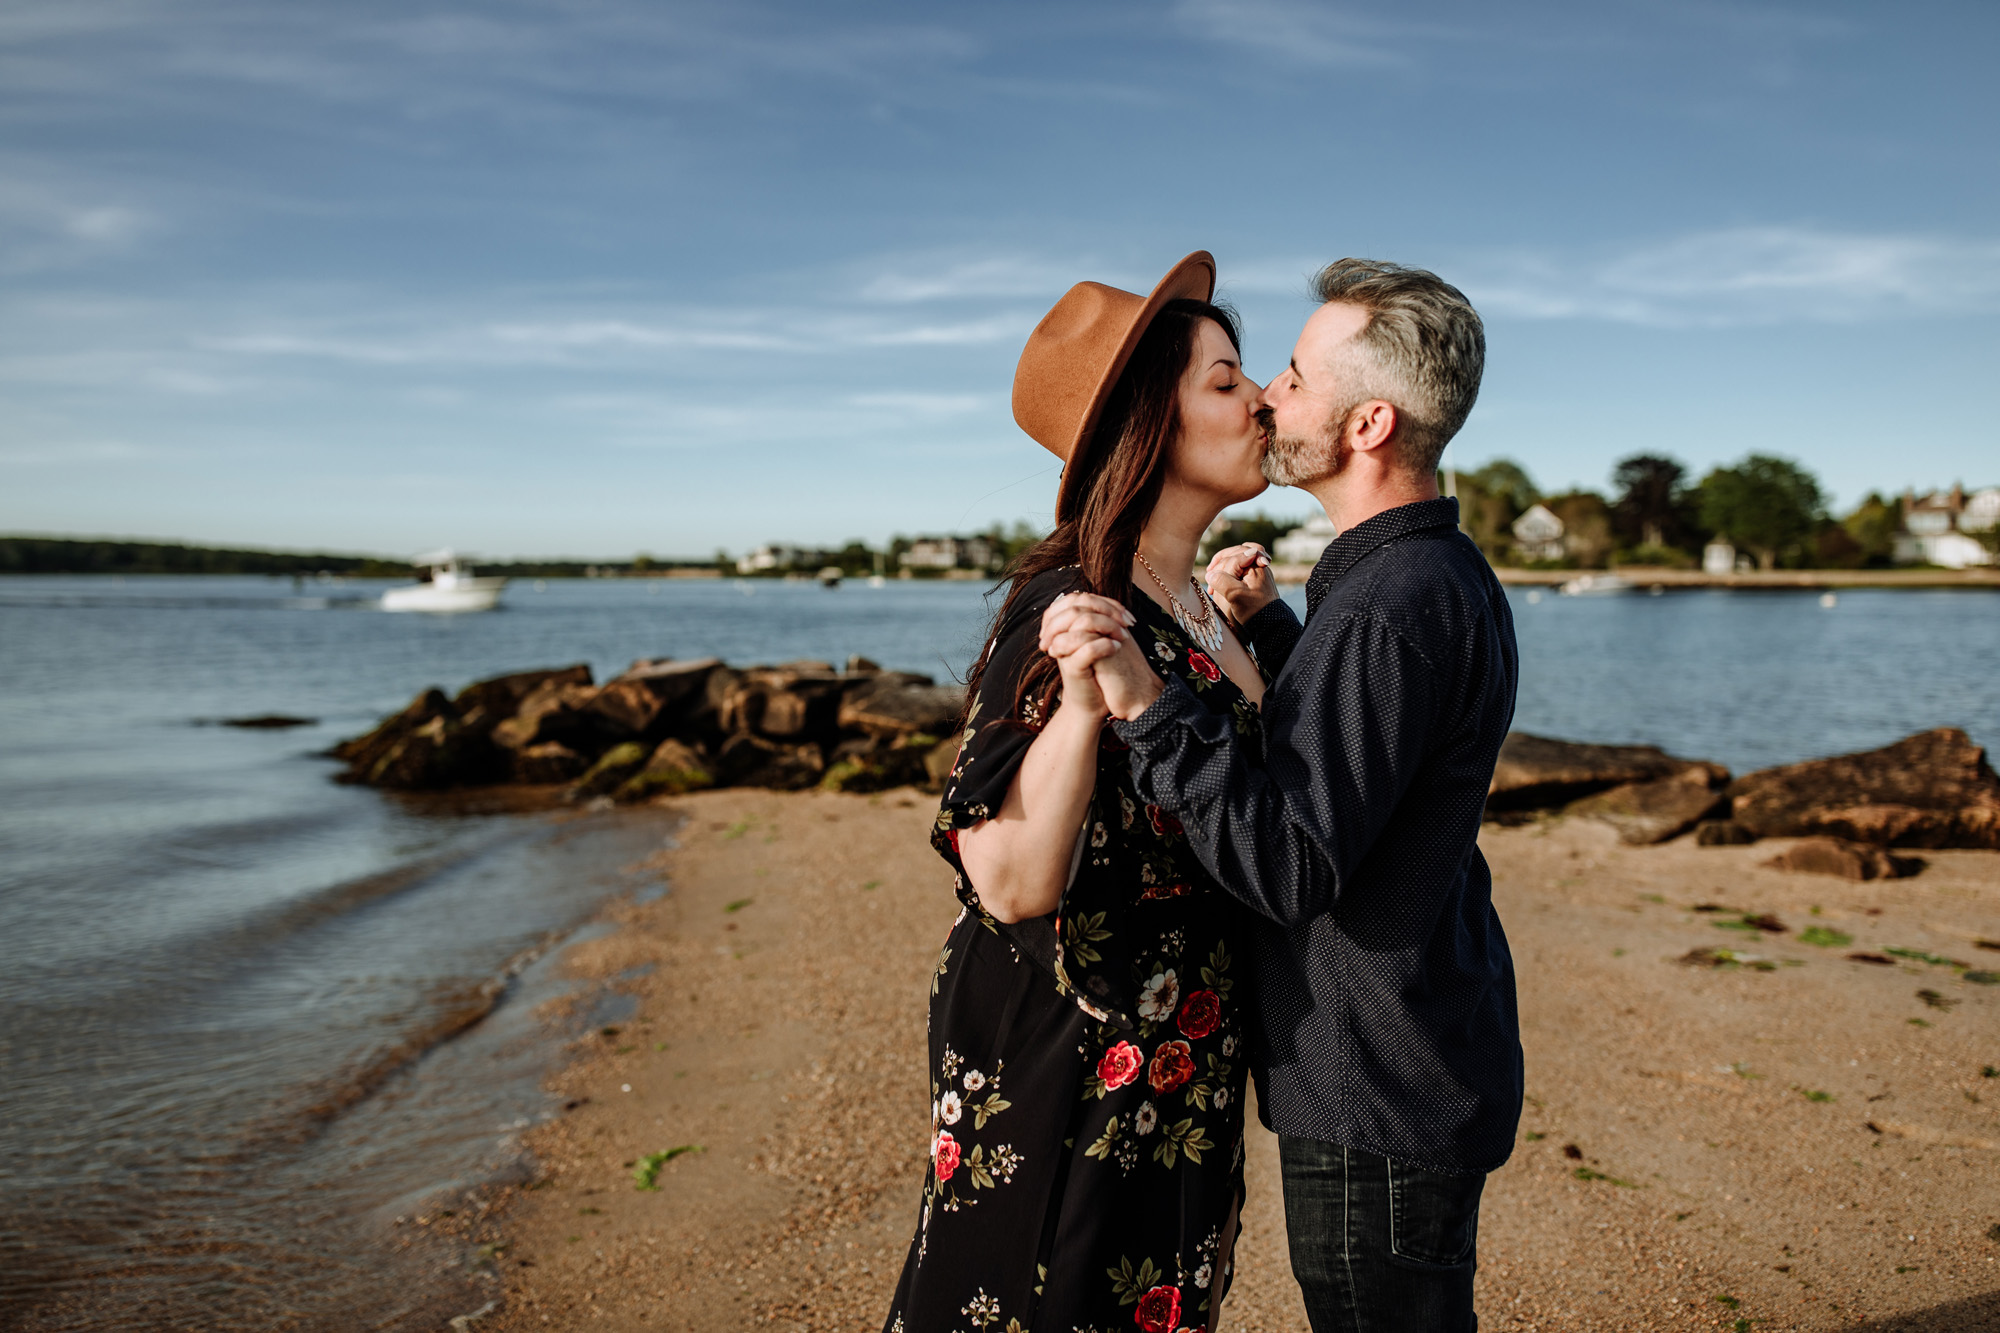 watch-hill-rhode-island-beach-engagement-session